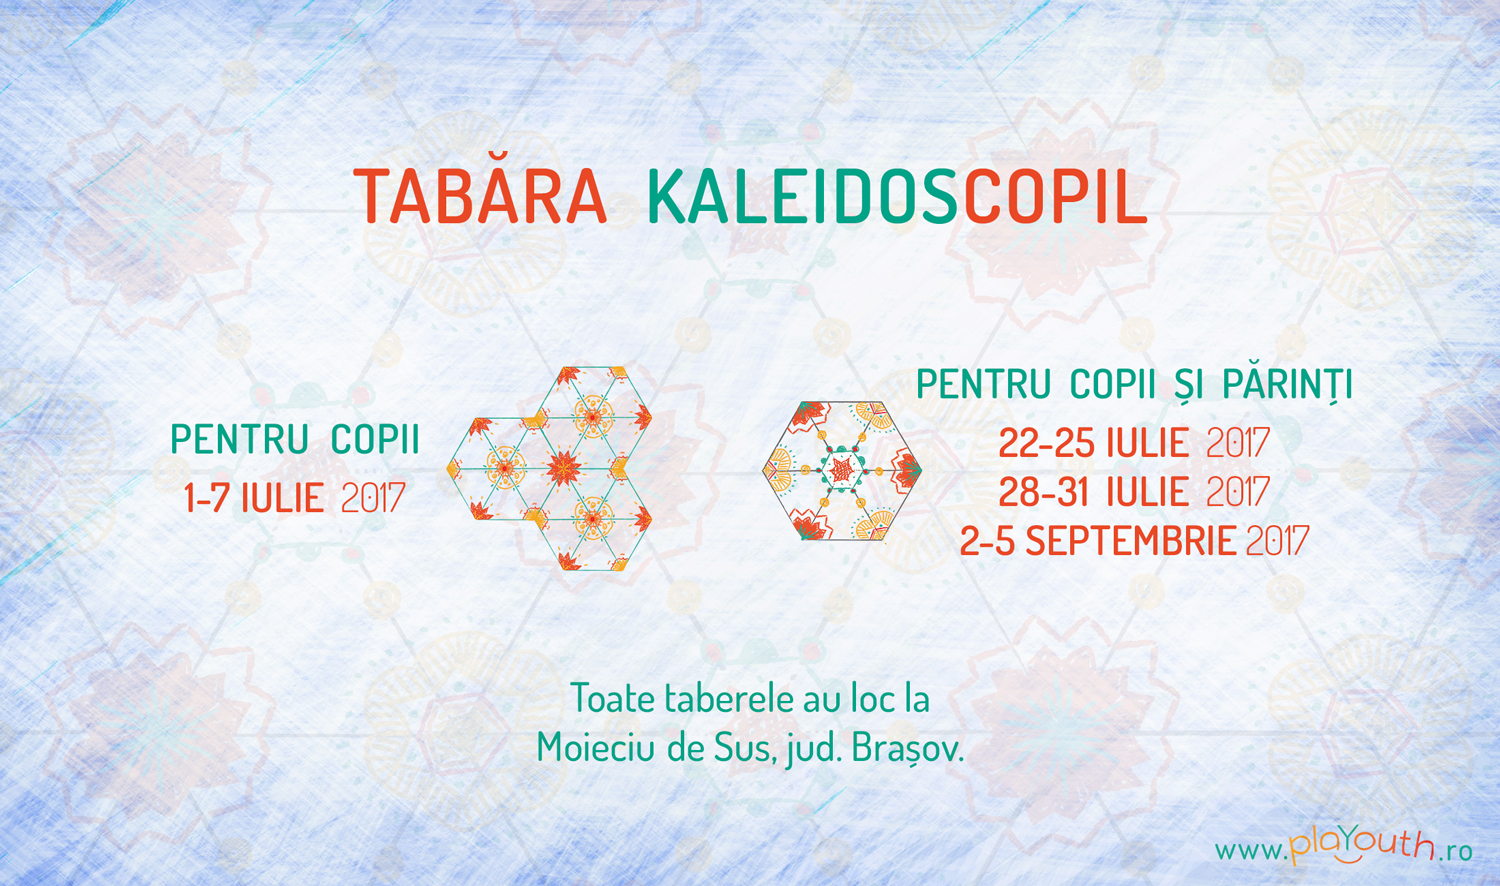 Taberele KaleidosCopil pentru copii si parinti